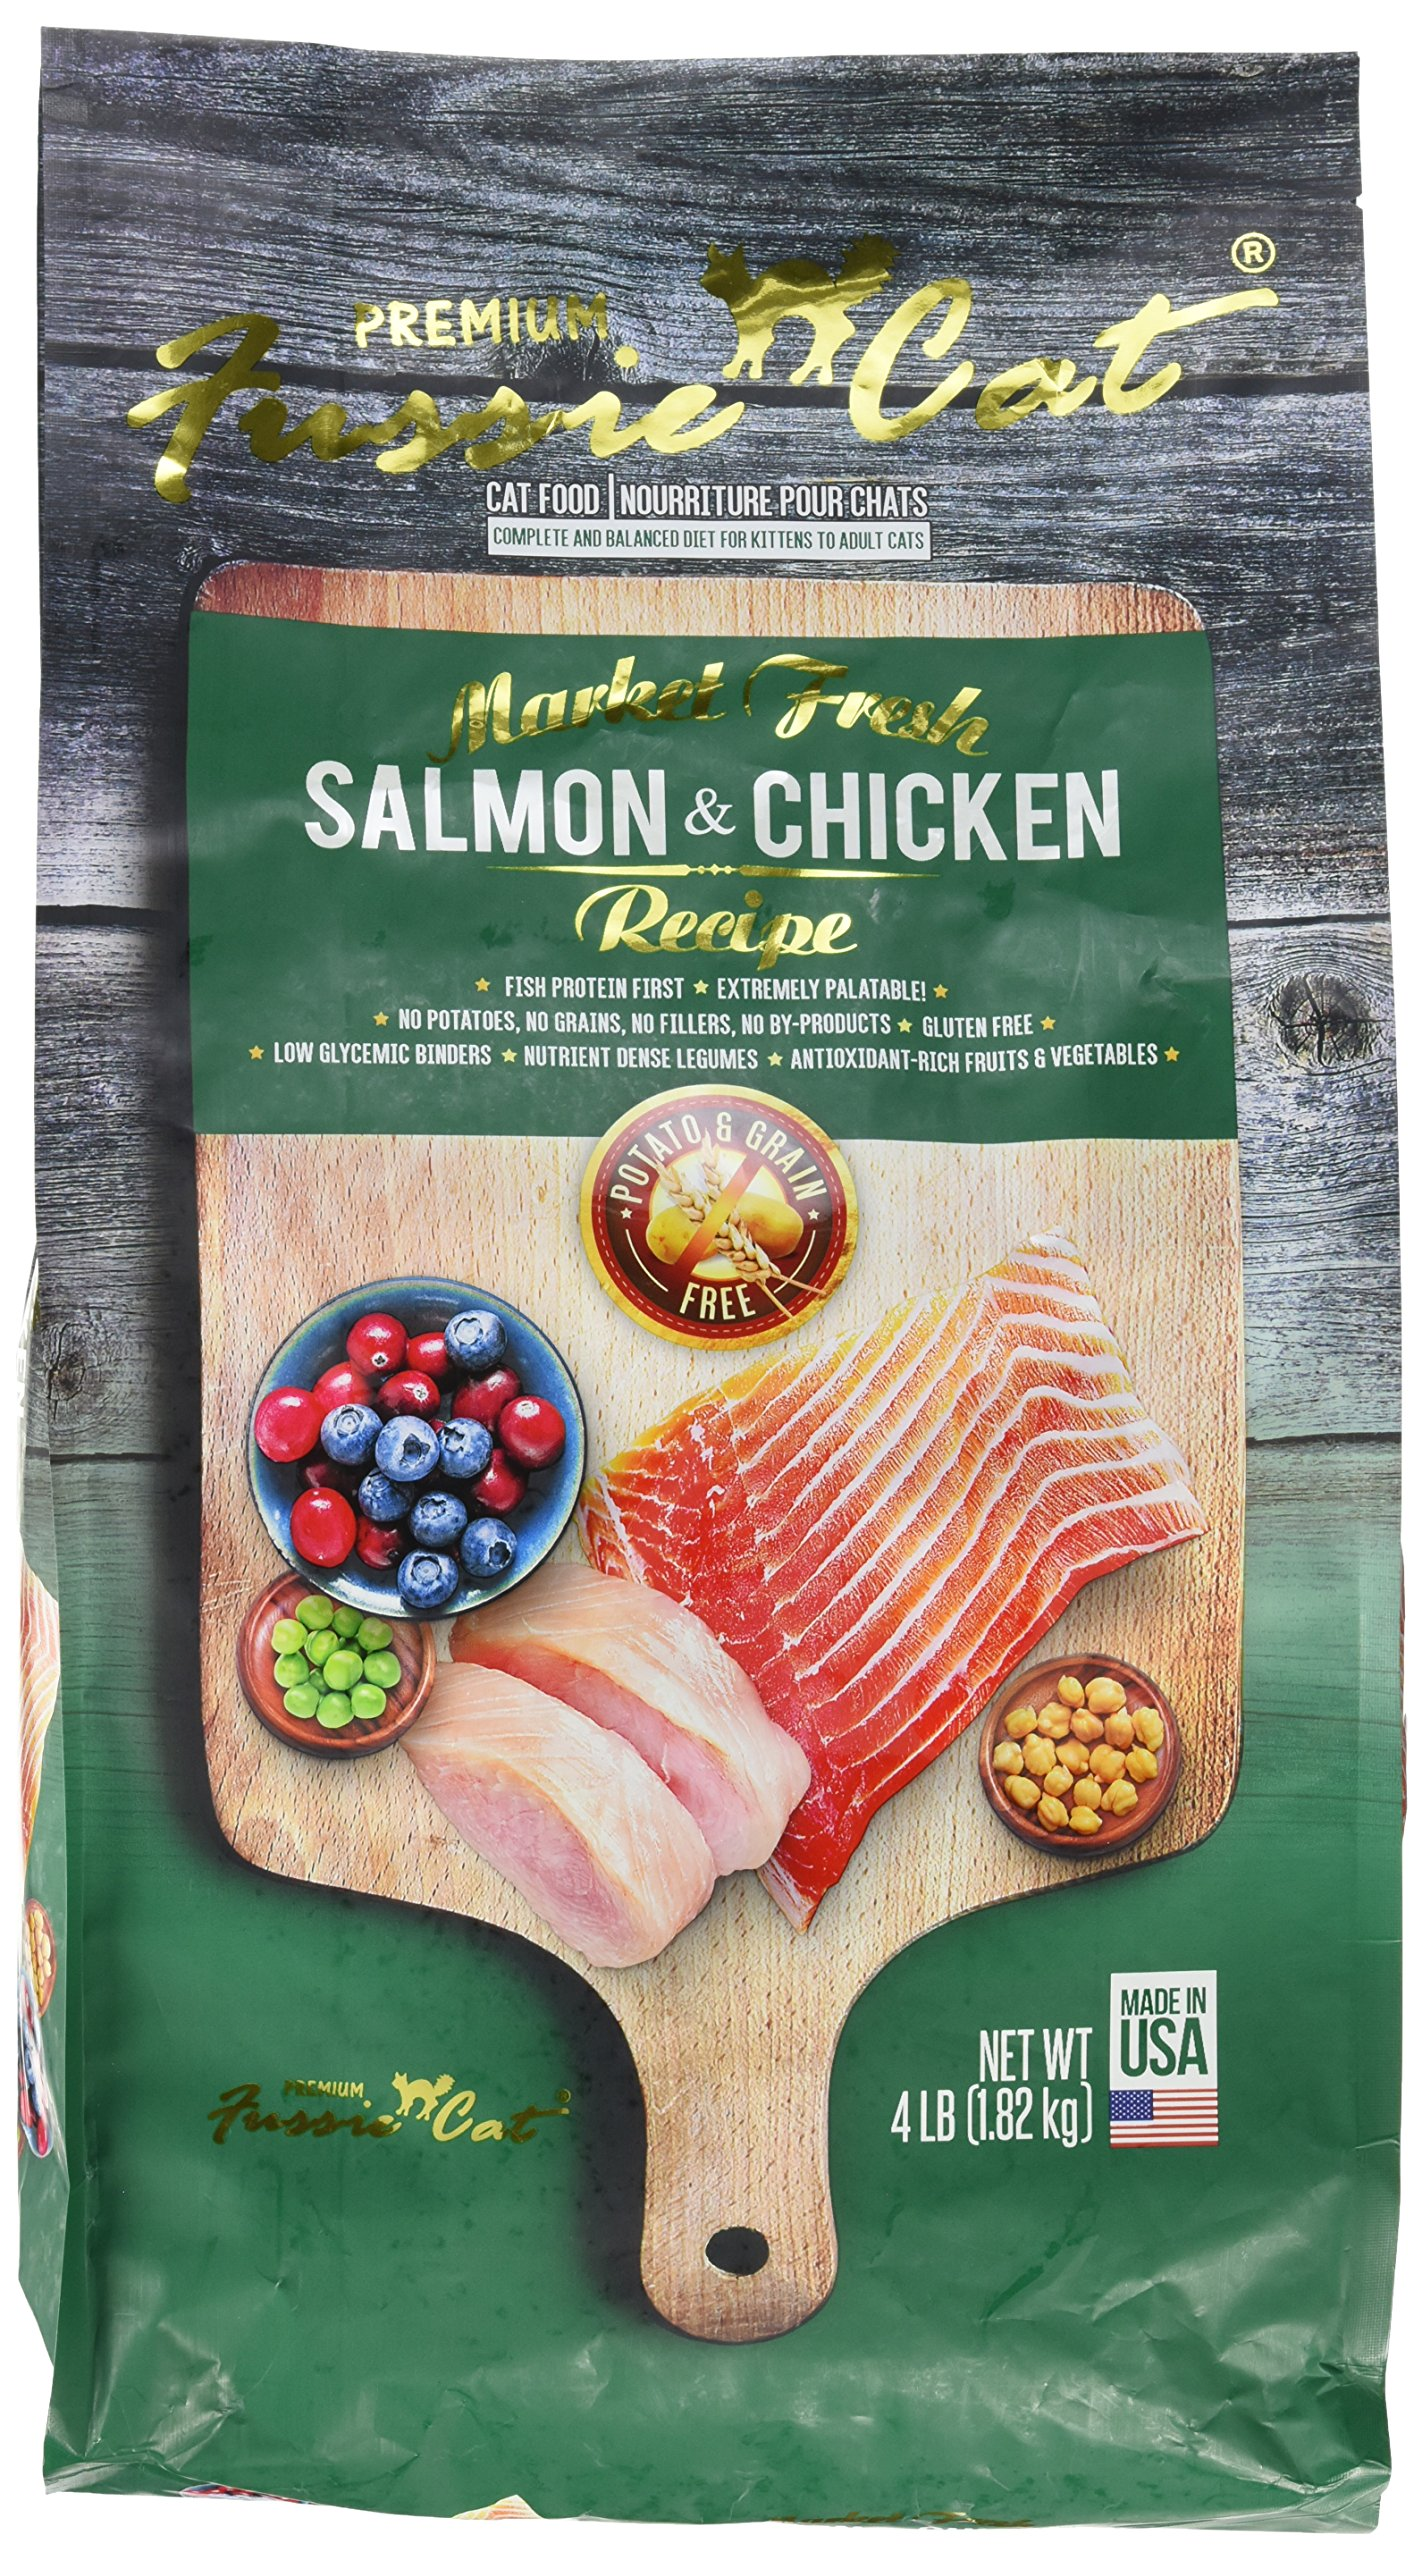 Fussie Cat Market Fresh Salmon & Chicken Recipe, 4 lb